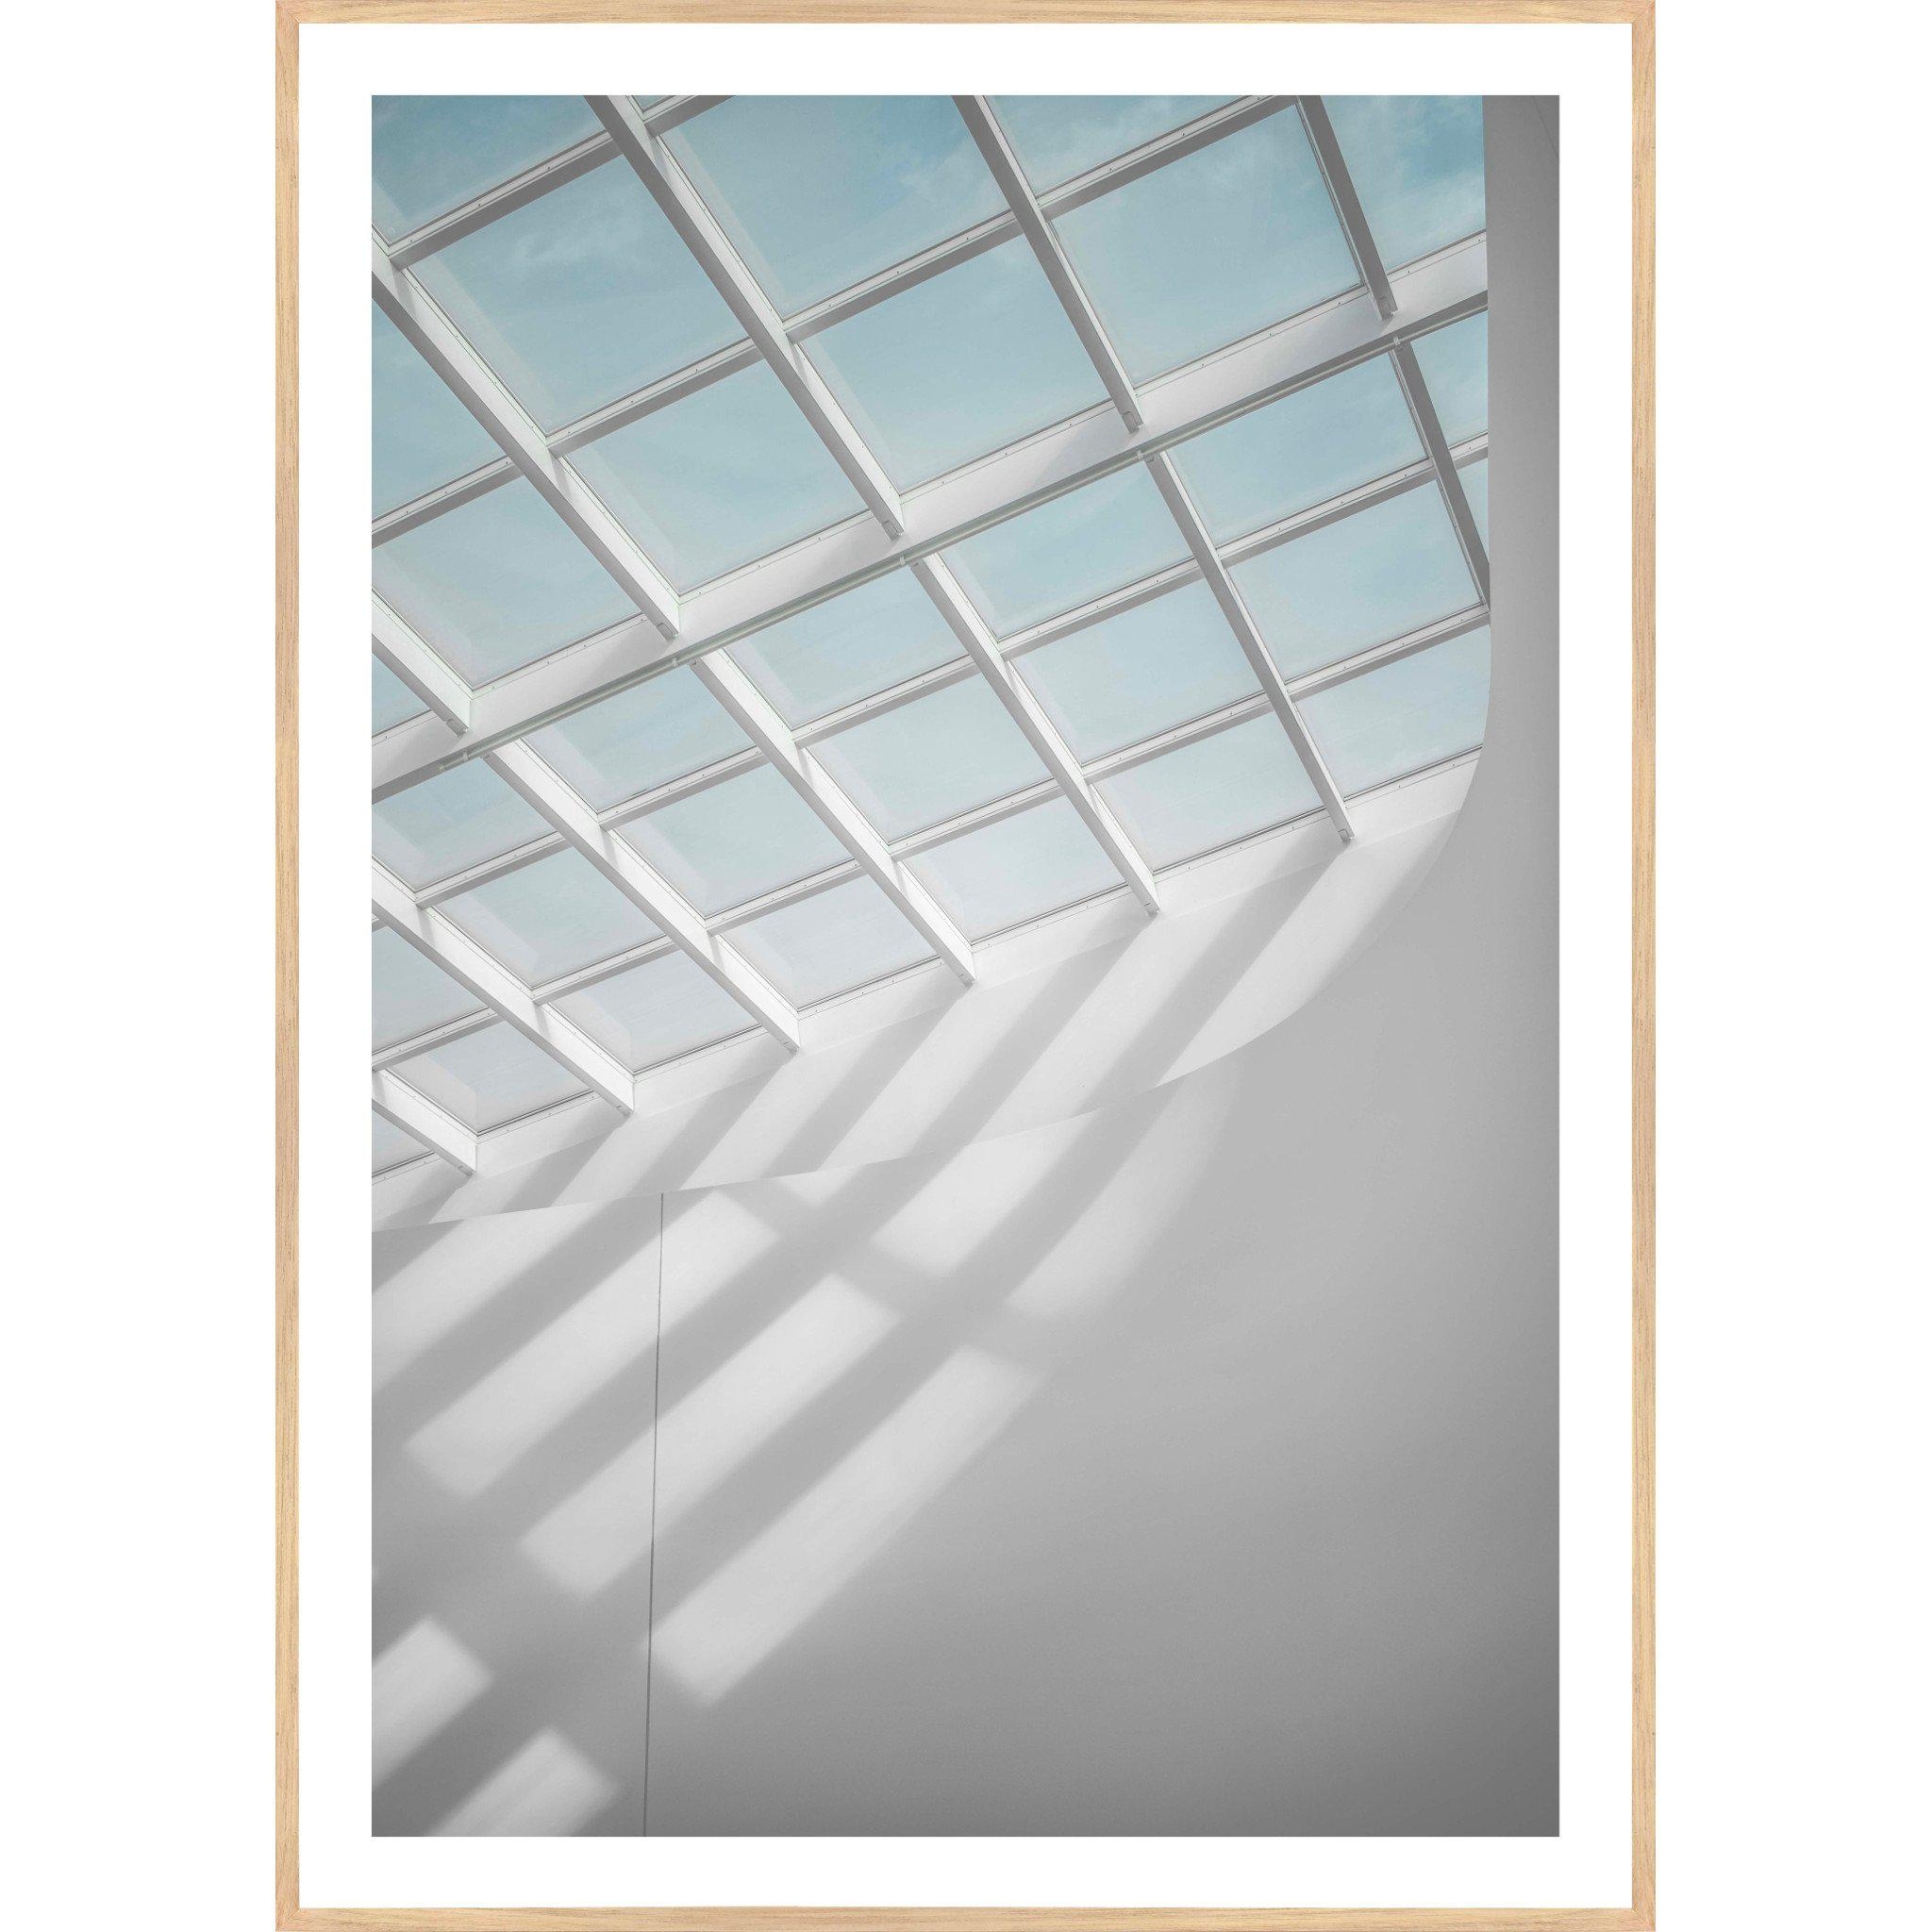 Glass Ceilings - Wall Art Print, Portrait